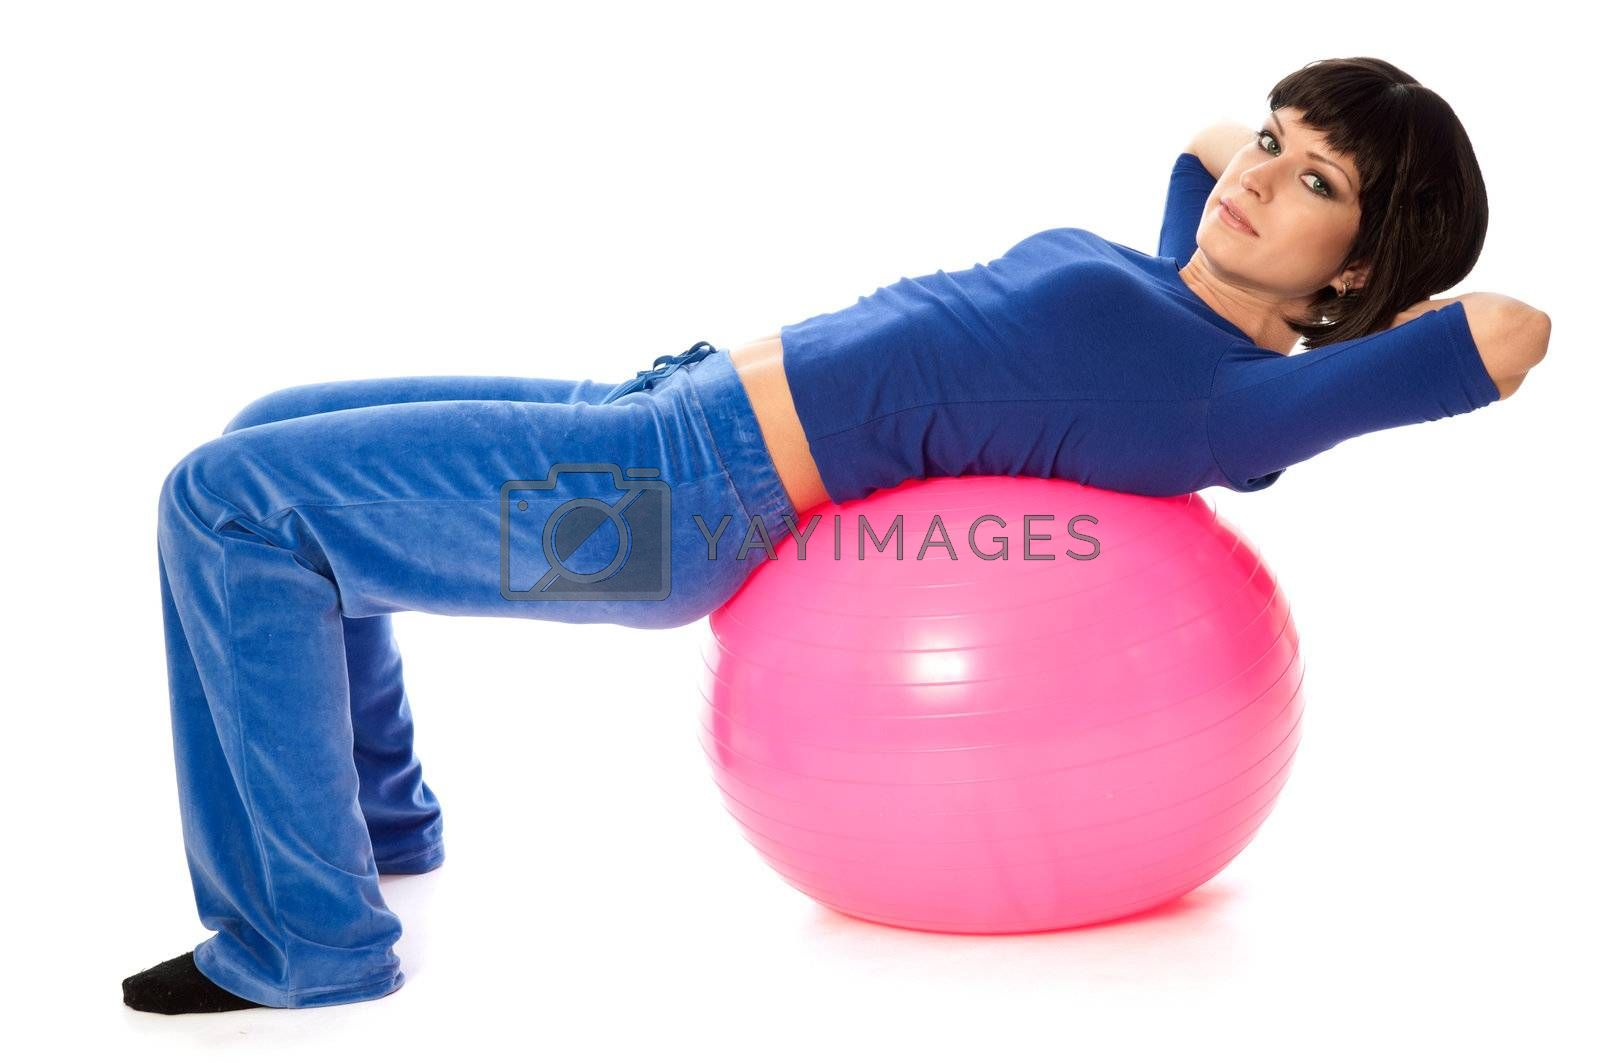 instructor showing exercises using fitball at gym to people